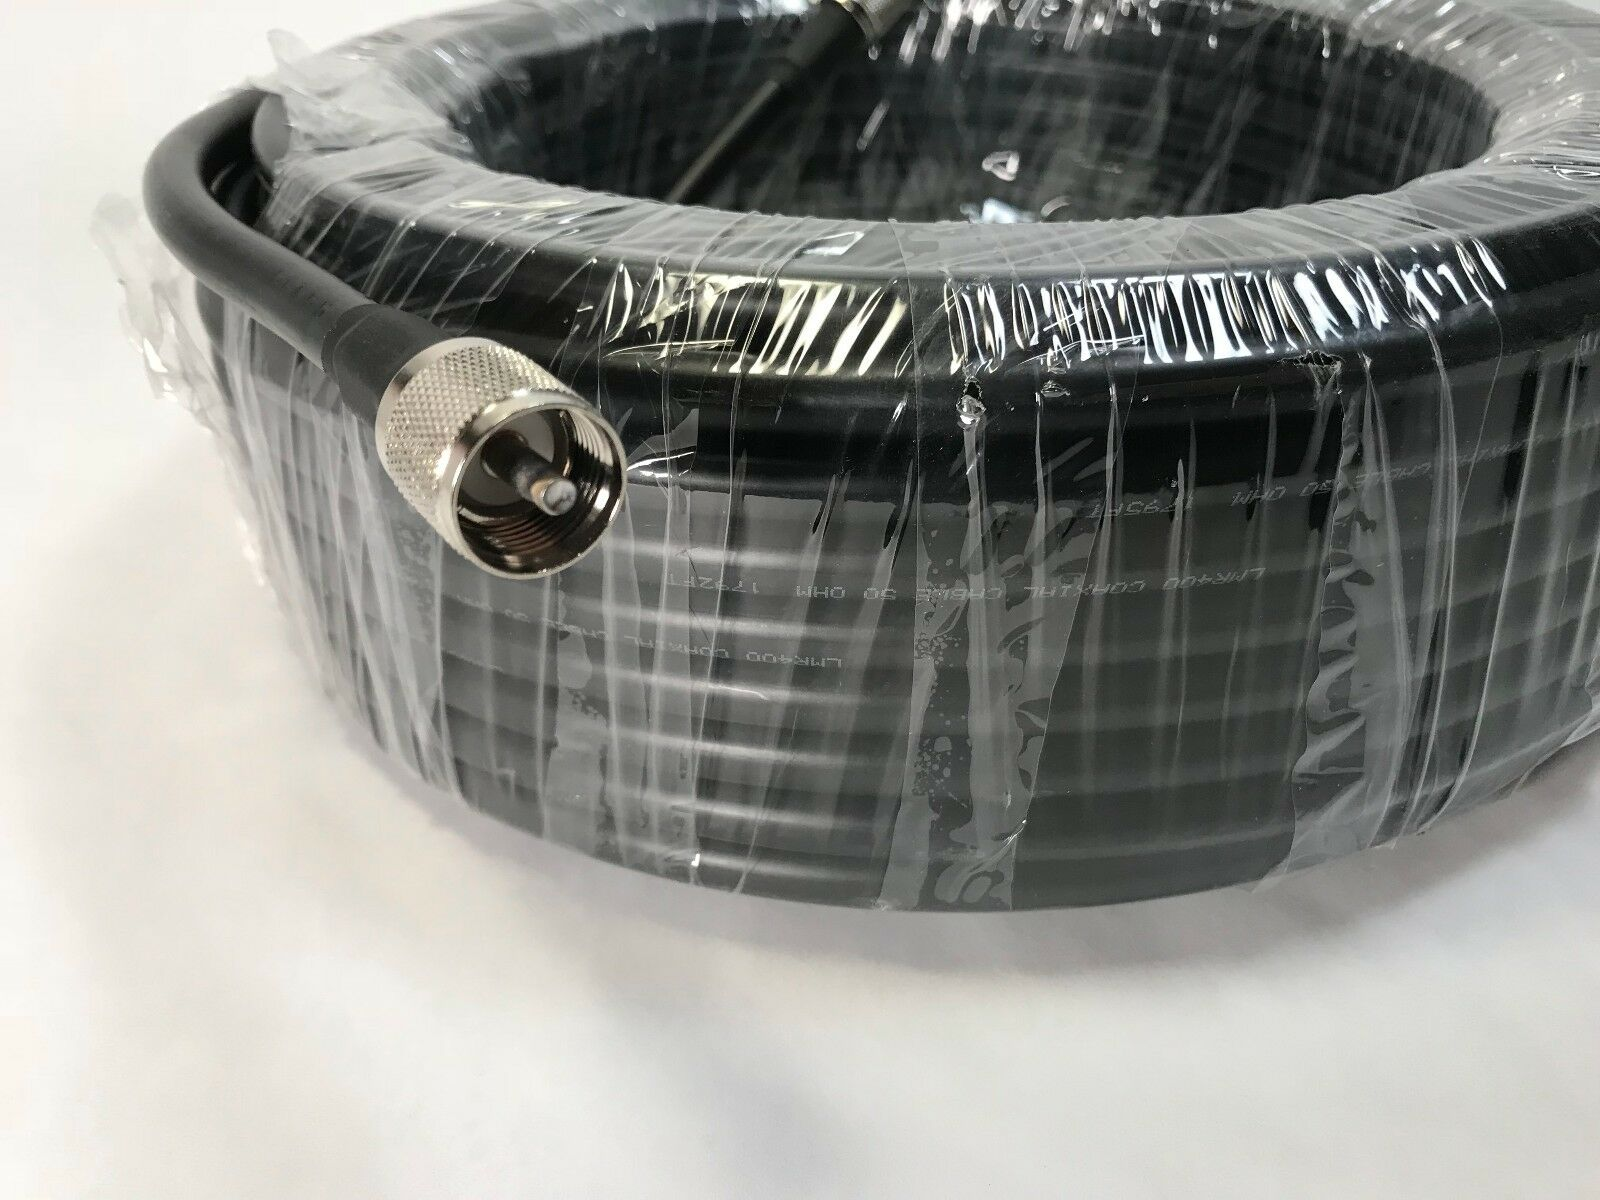 100FT LMR-400 COAX COAXIAL ULTRA LOW LOSS CABLE w/ MALE PL-259 CB HAM RADIO USA. Available Now for 117.95